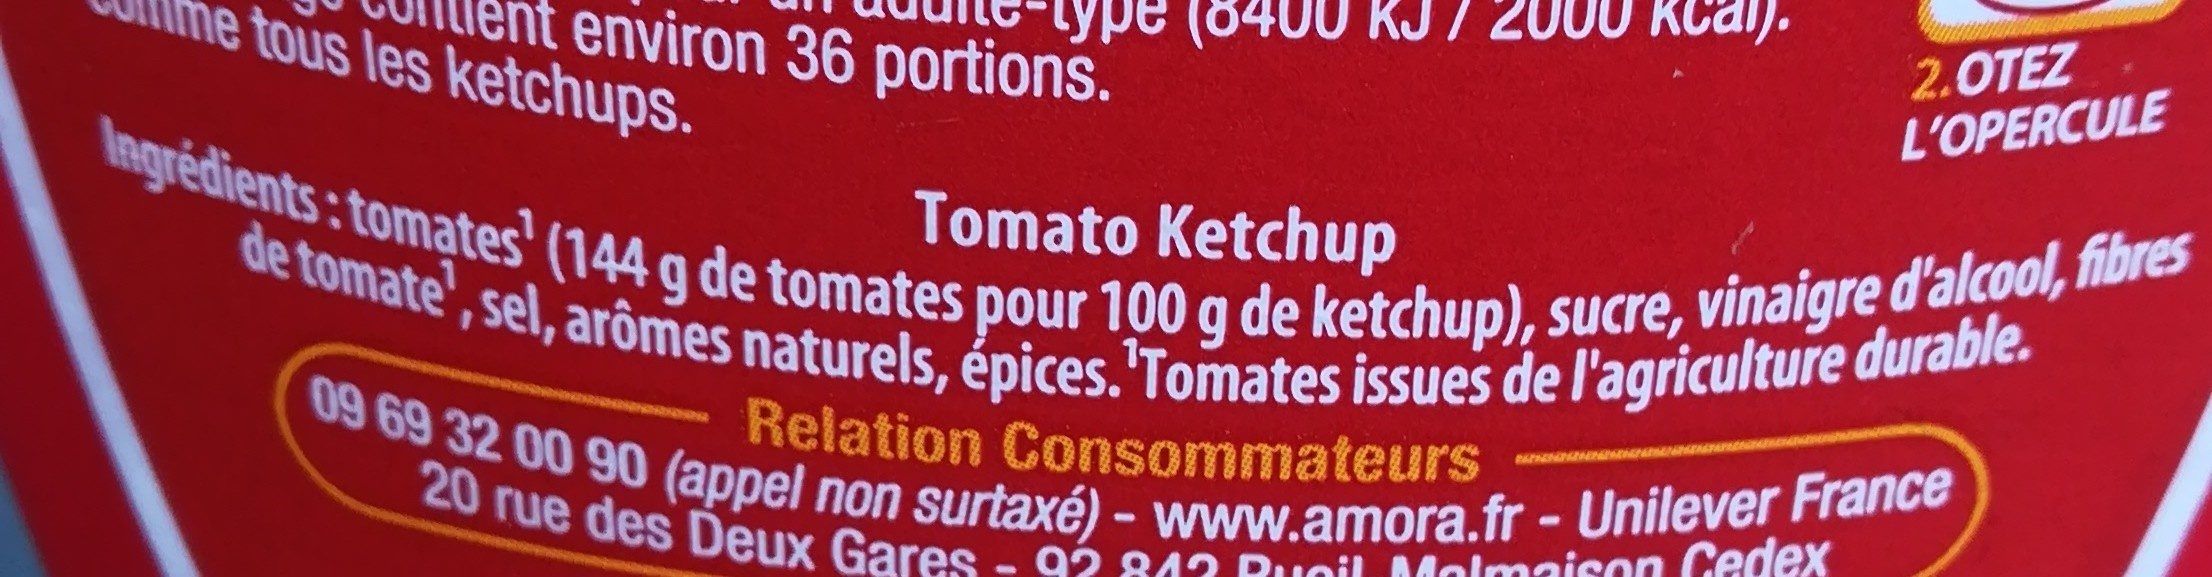 Tomato ketchup - Ingredients